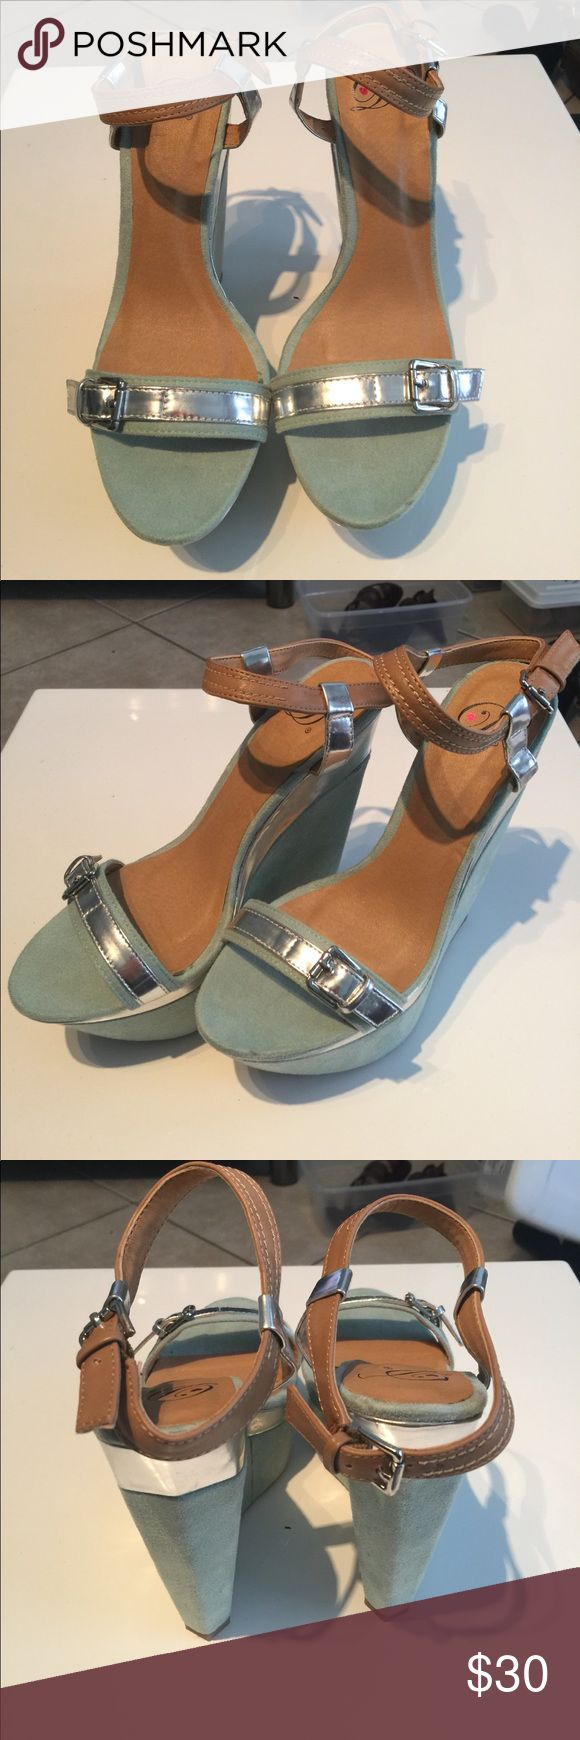 D mint wedges Perfect wedges for summer D Shoes Wedges